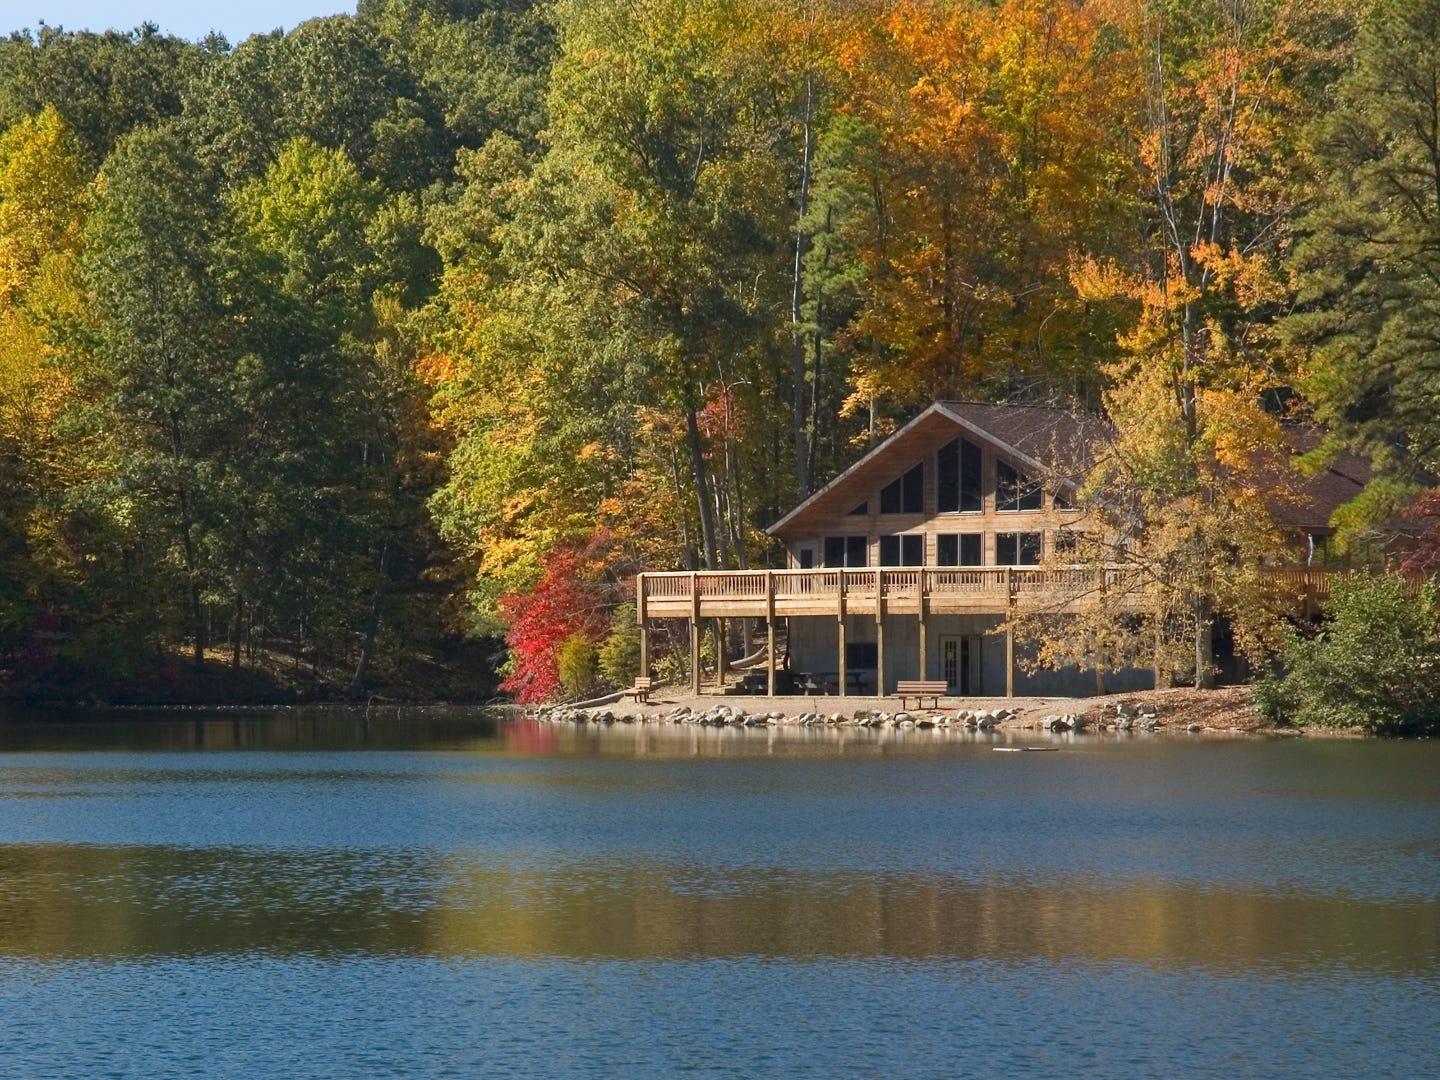 Ohio: Nature lovers will find plenty to do in Hocking Hills: Hiking to Old Man's Cave, exploring the natural beauty of Ash Cave, going on a canoe adventure and zip lining through nature are just a few of the things you can do outdoors here. There's also almost always a festival or event going on, so you can celebrate with the locals. Just avoid visiting in December, which is the most expensive time to visit the state of Ohio. Hocking Hills Adventures Crocketts Run Canoe Trip: $38 per canoe.